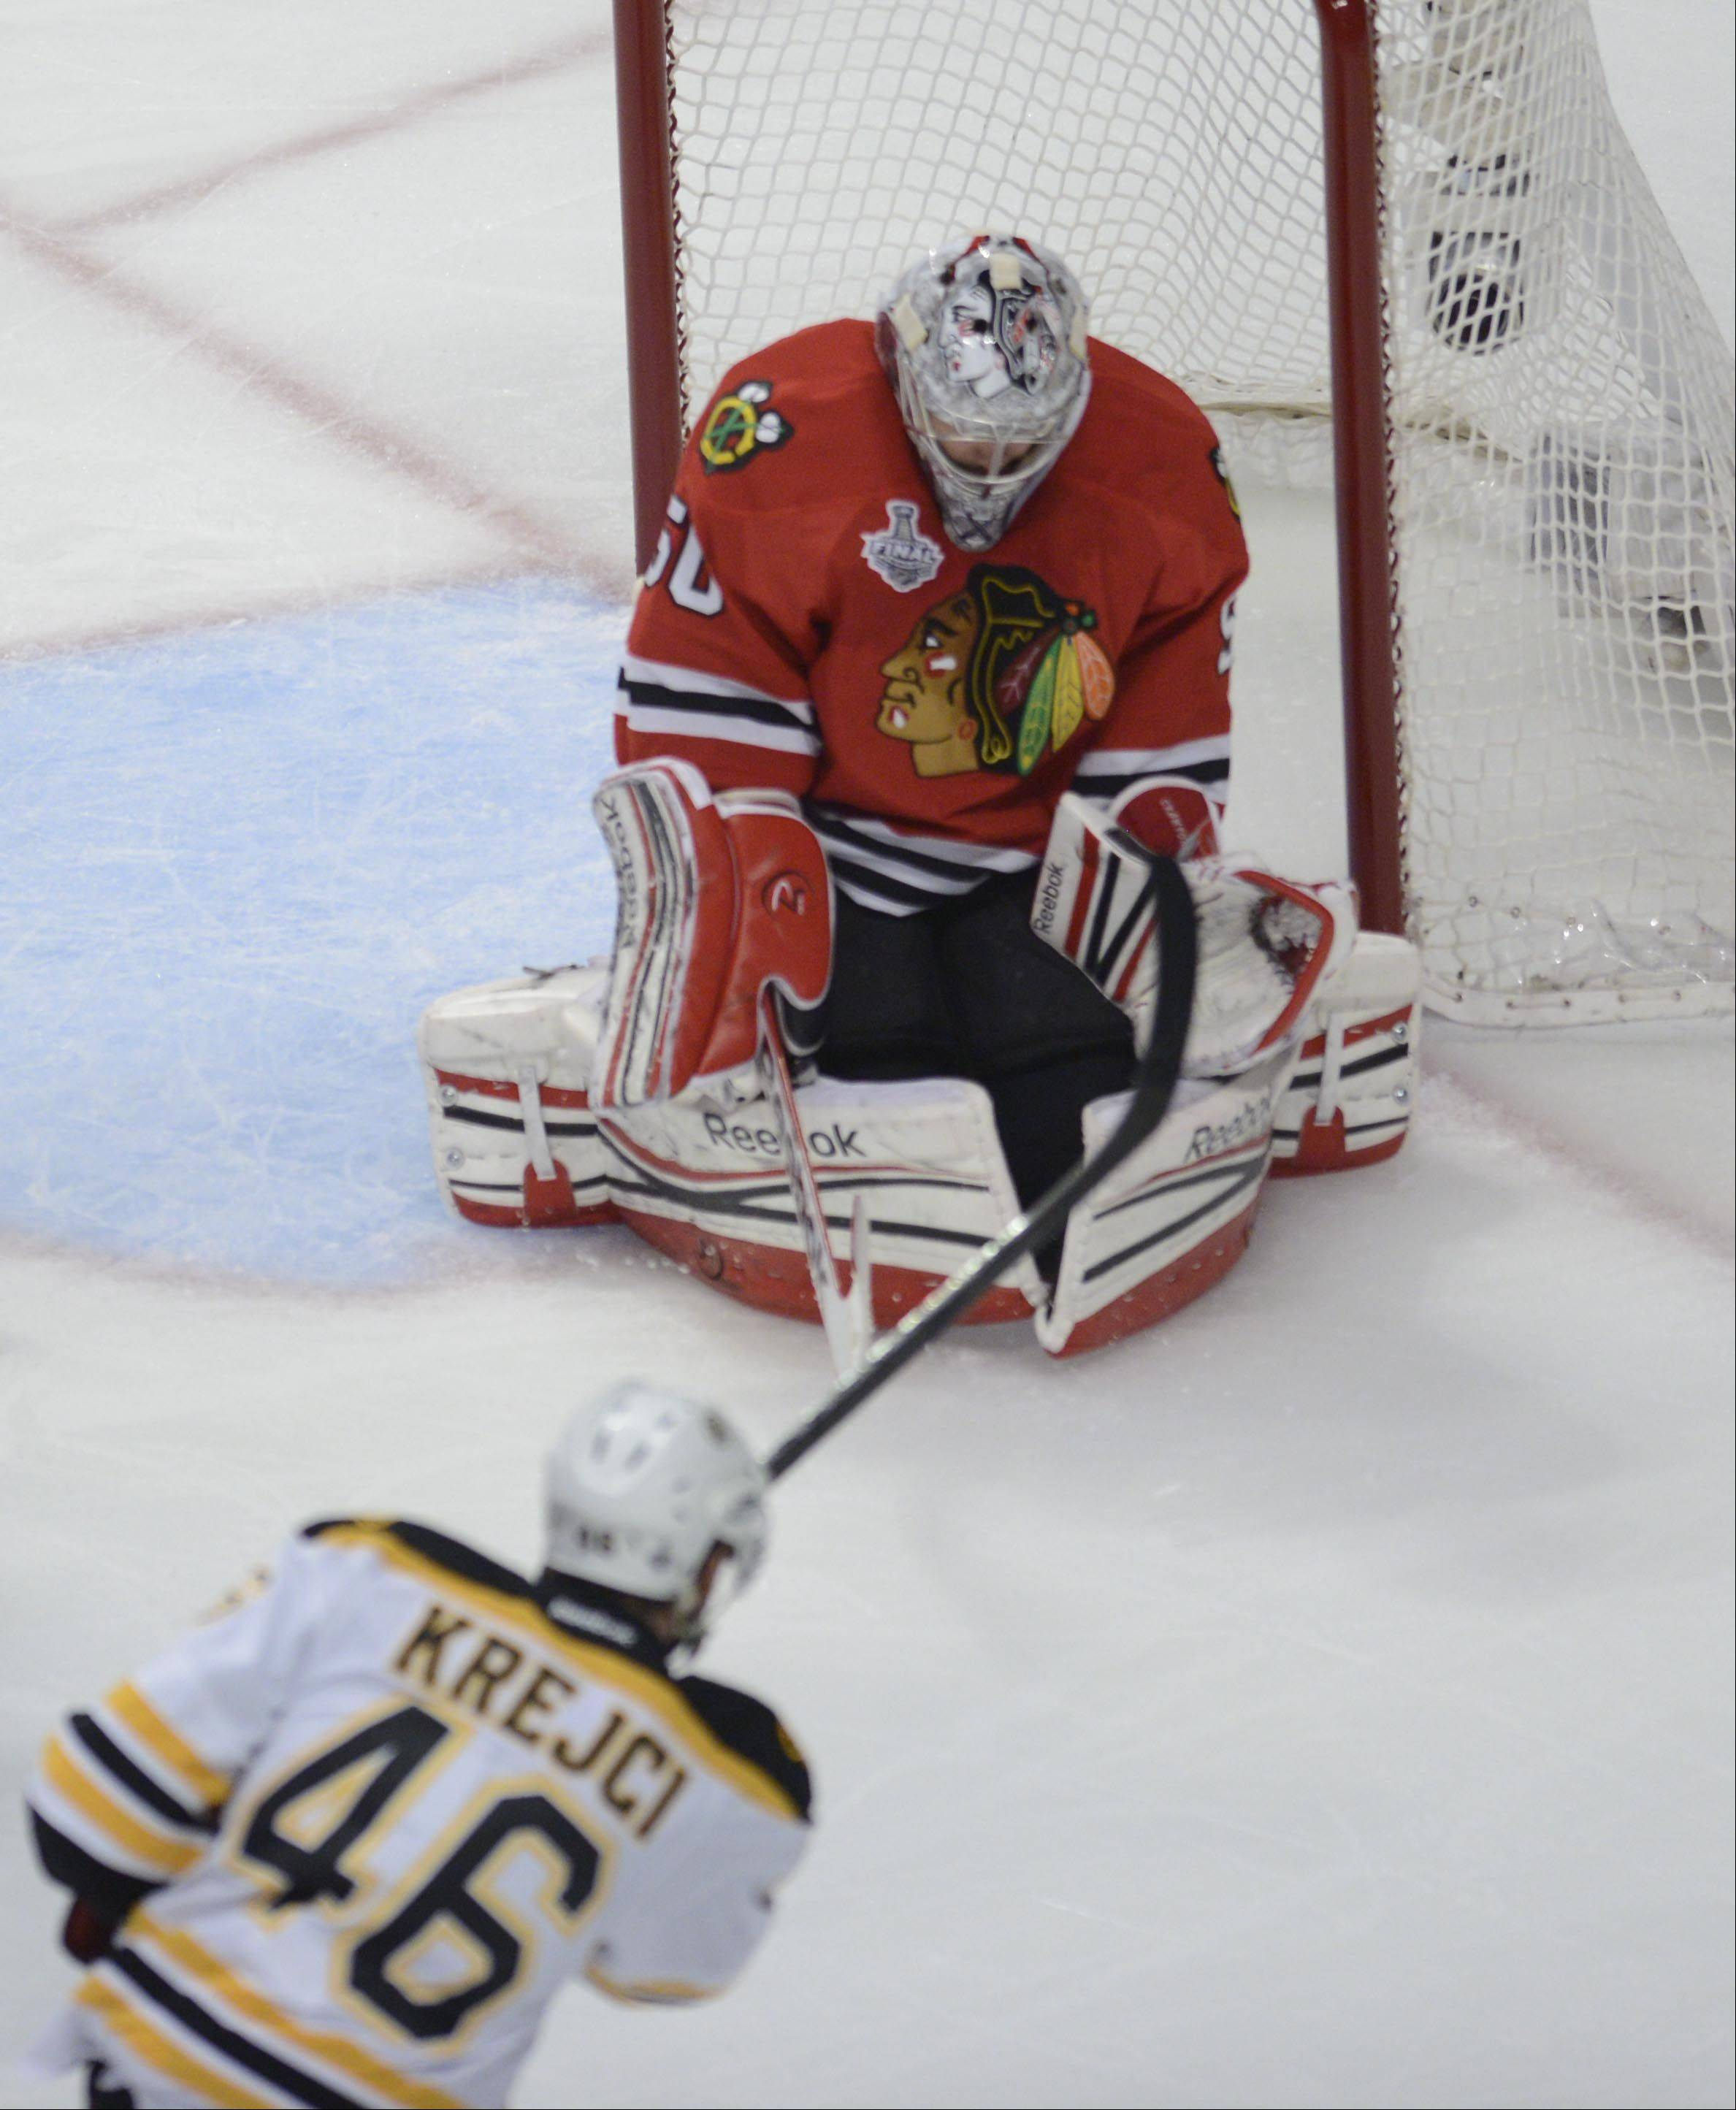 Chicago Blackhawks goalie Corey Crawford blocks and holds a shot by Boston Bruins center David Krejci in the first period during Game 1 of the Stanley Cup Finals Wednesday at the United Center in Chicago.